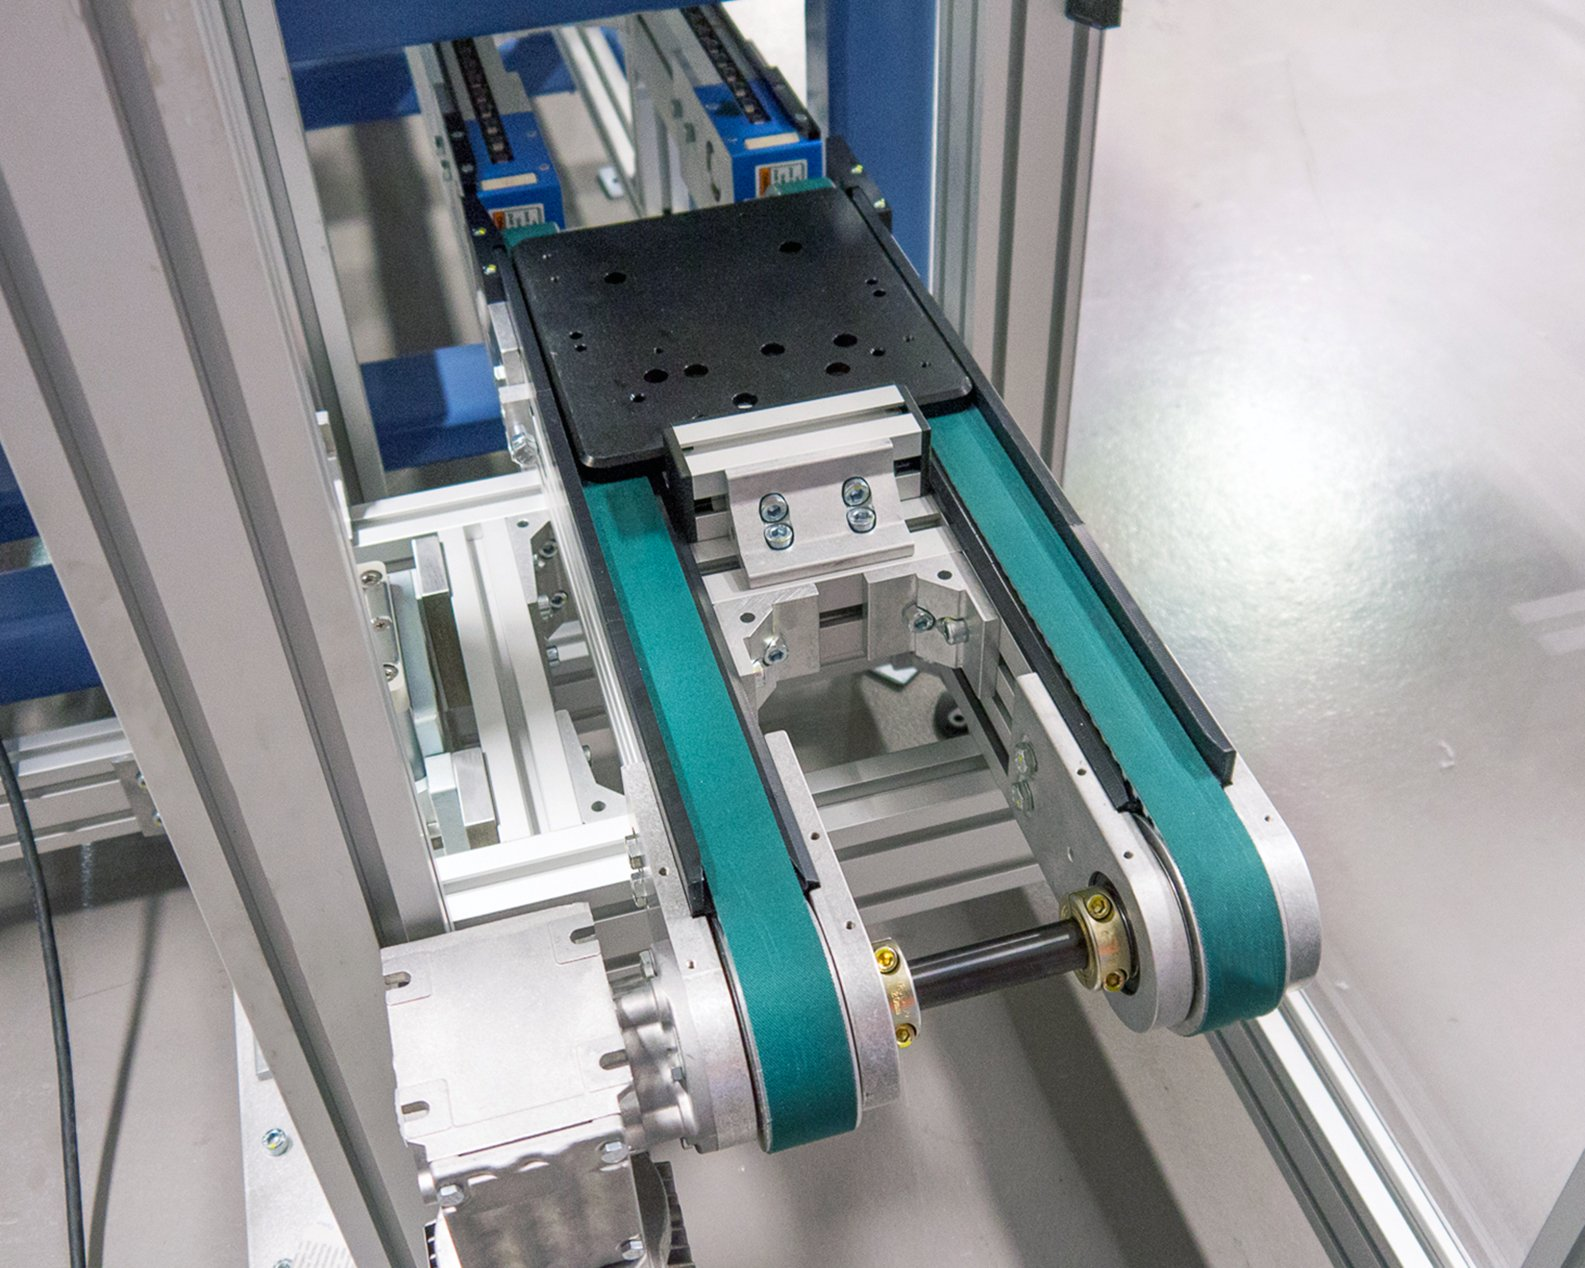 Timing belt conveyor in a vertical transfer unit with a plastic pallet